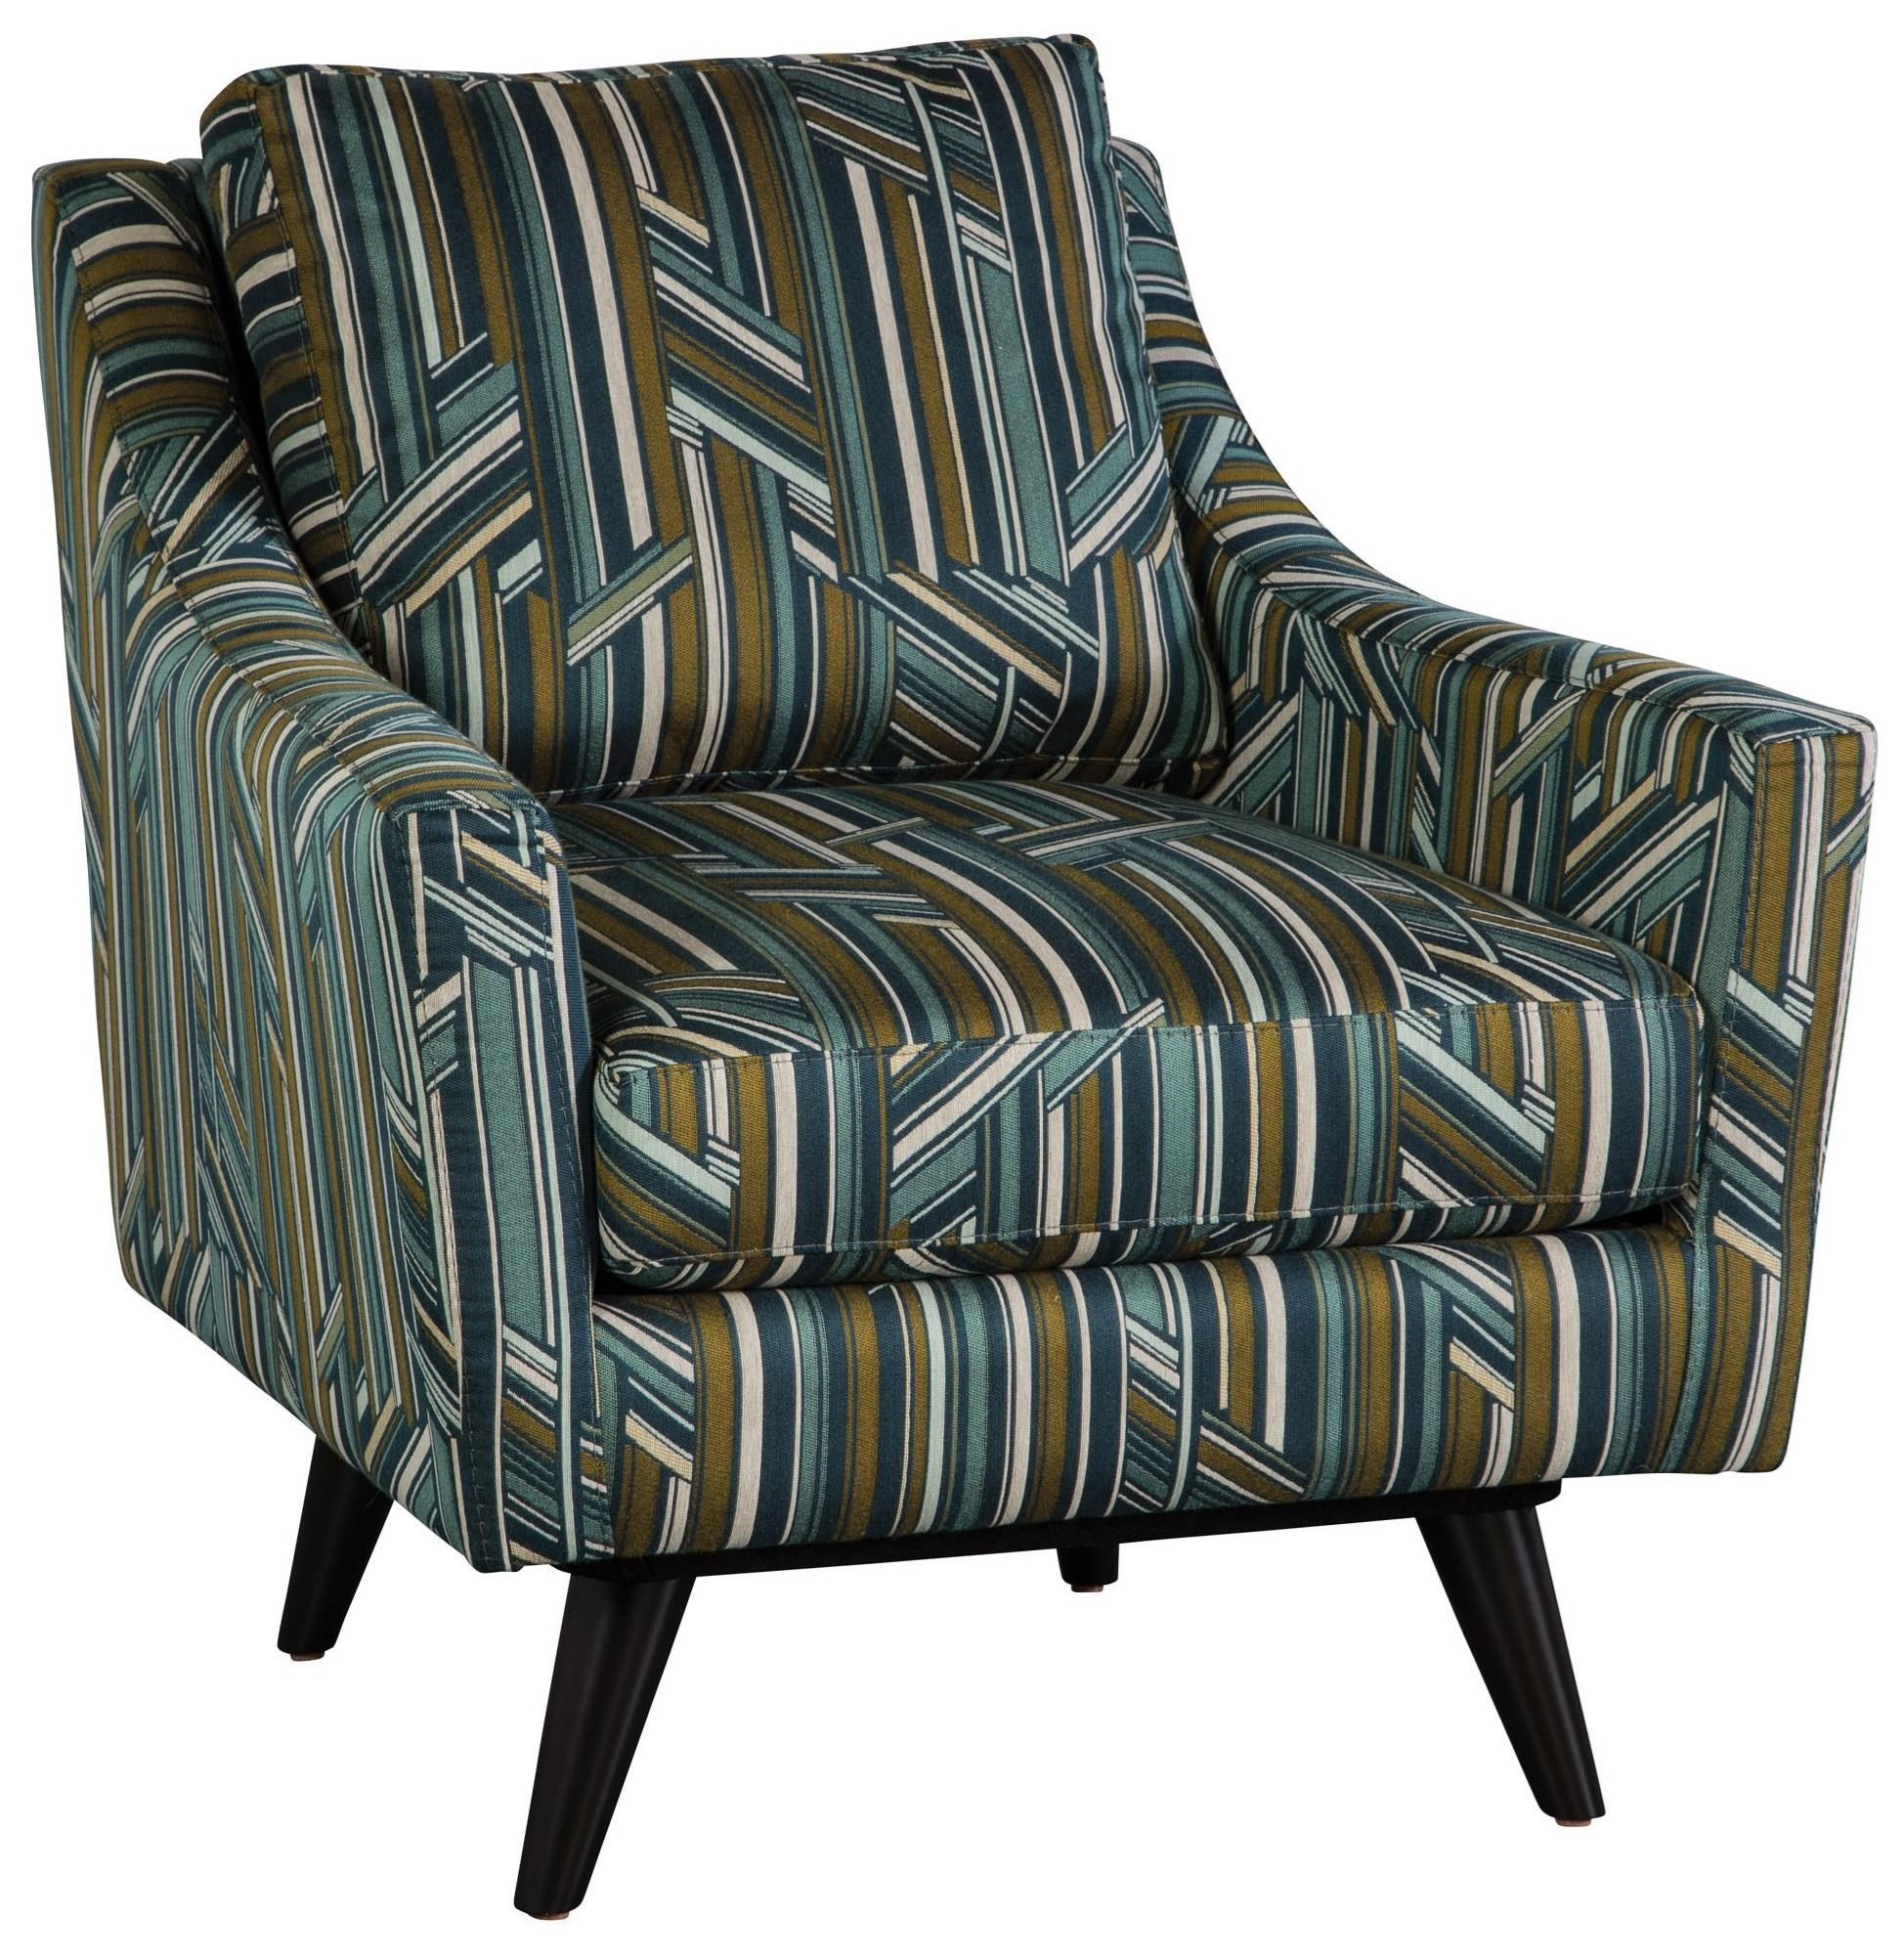 Jonathan Louis Carrie Mid Century Modern Accent Swivel Chair With Splayed Legs Fashion Furniture Upholstered Chairs